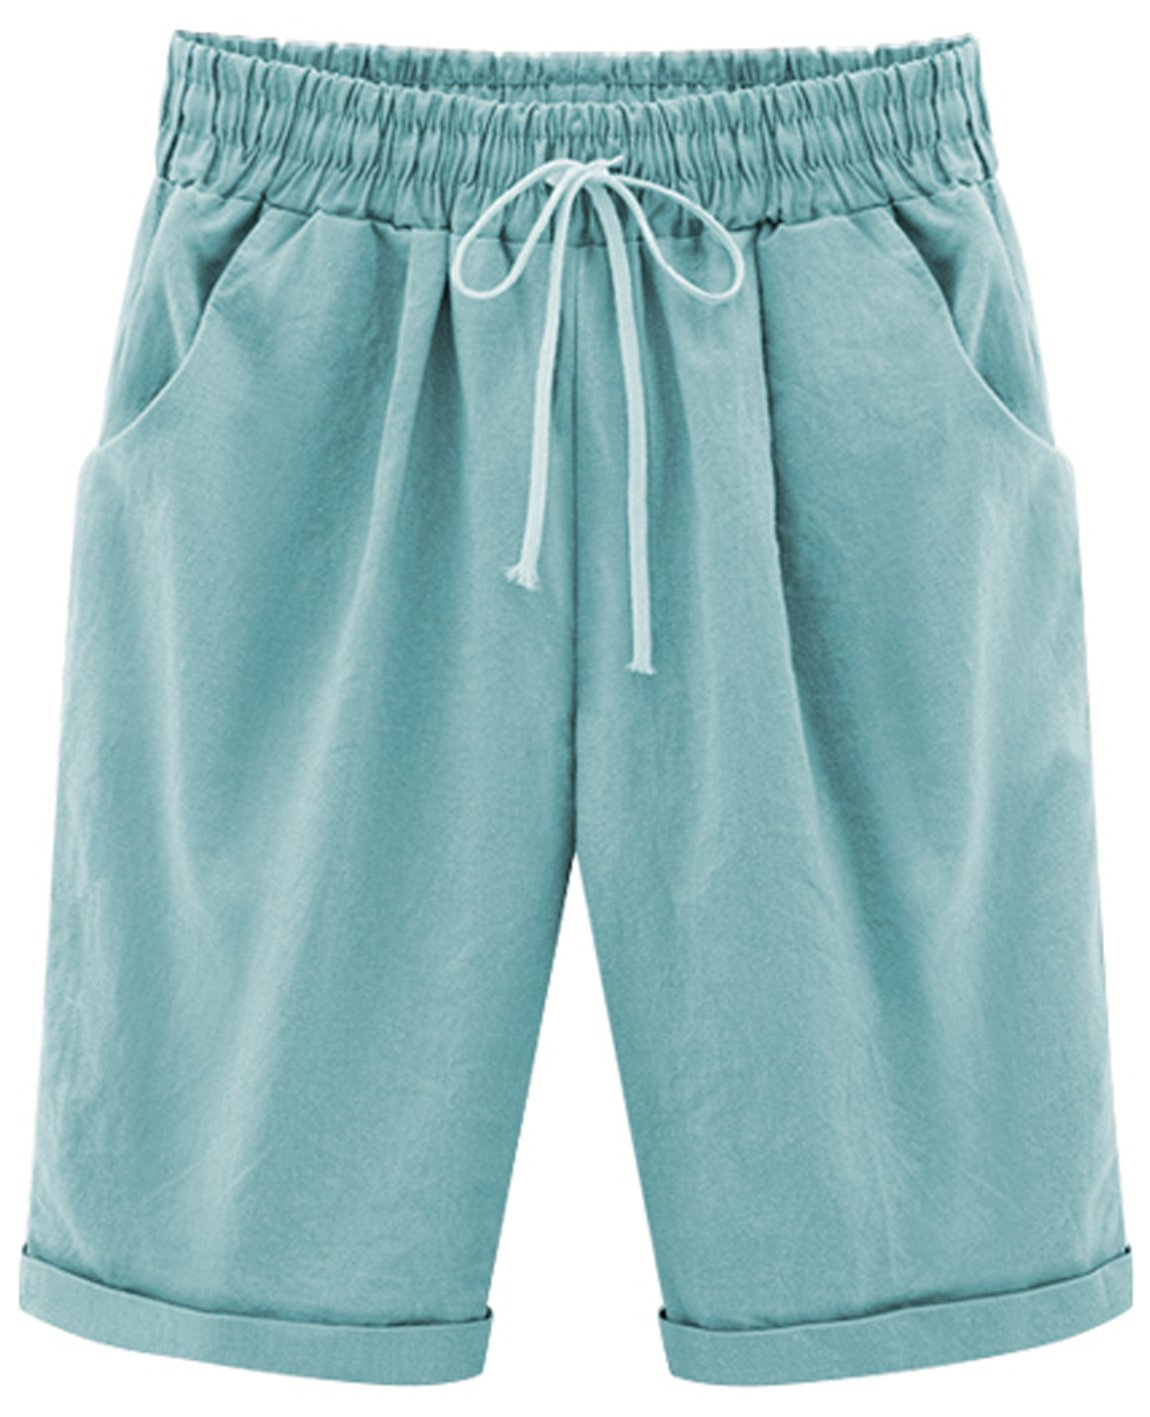 HOW'ON Women's Casual Elastic Waist Knee-Length Curling Bermuda Shorts with Drawstring SkyBlue L